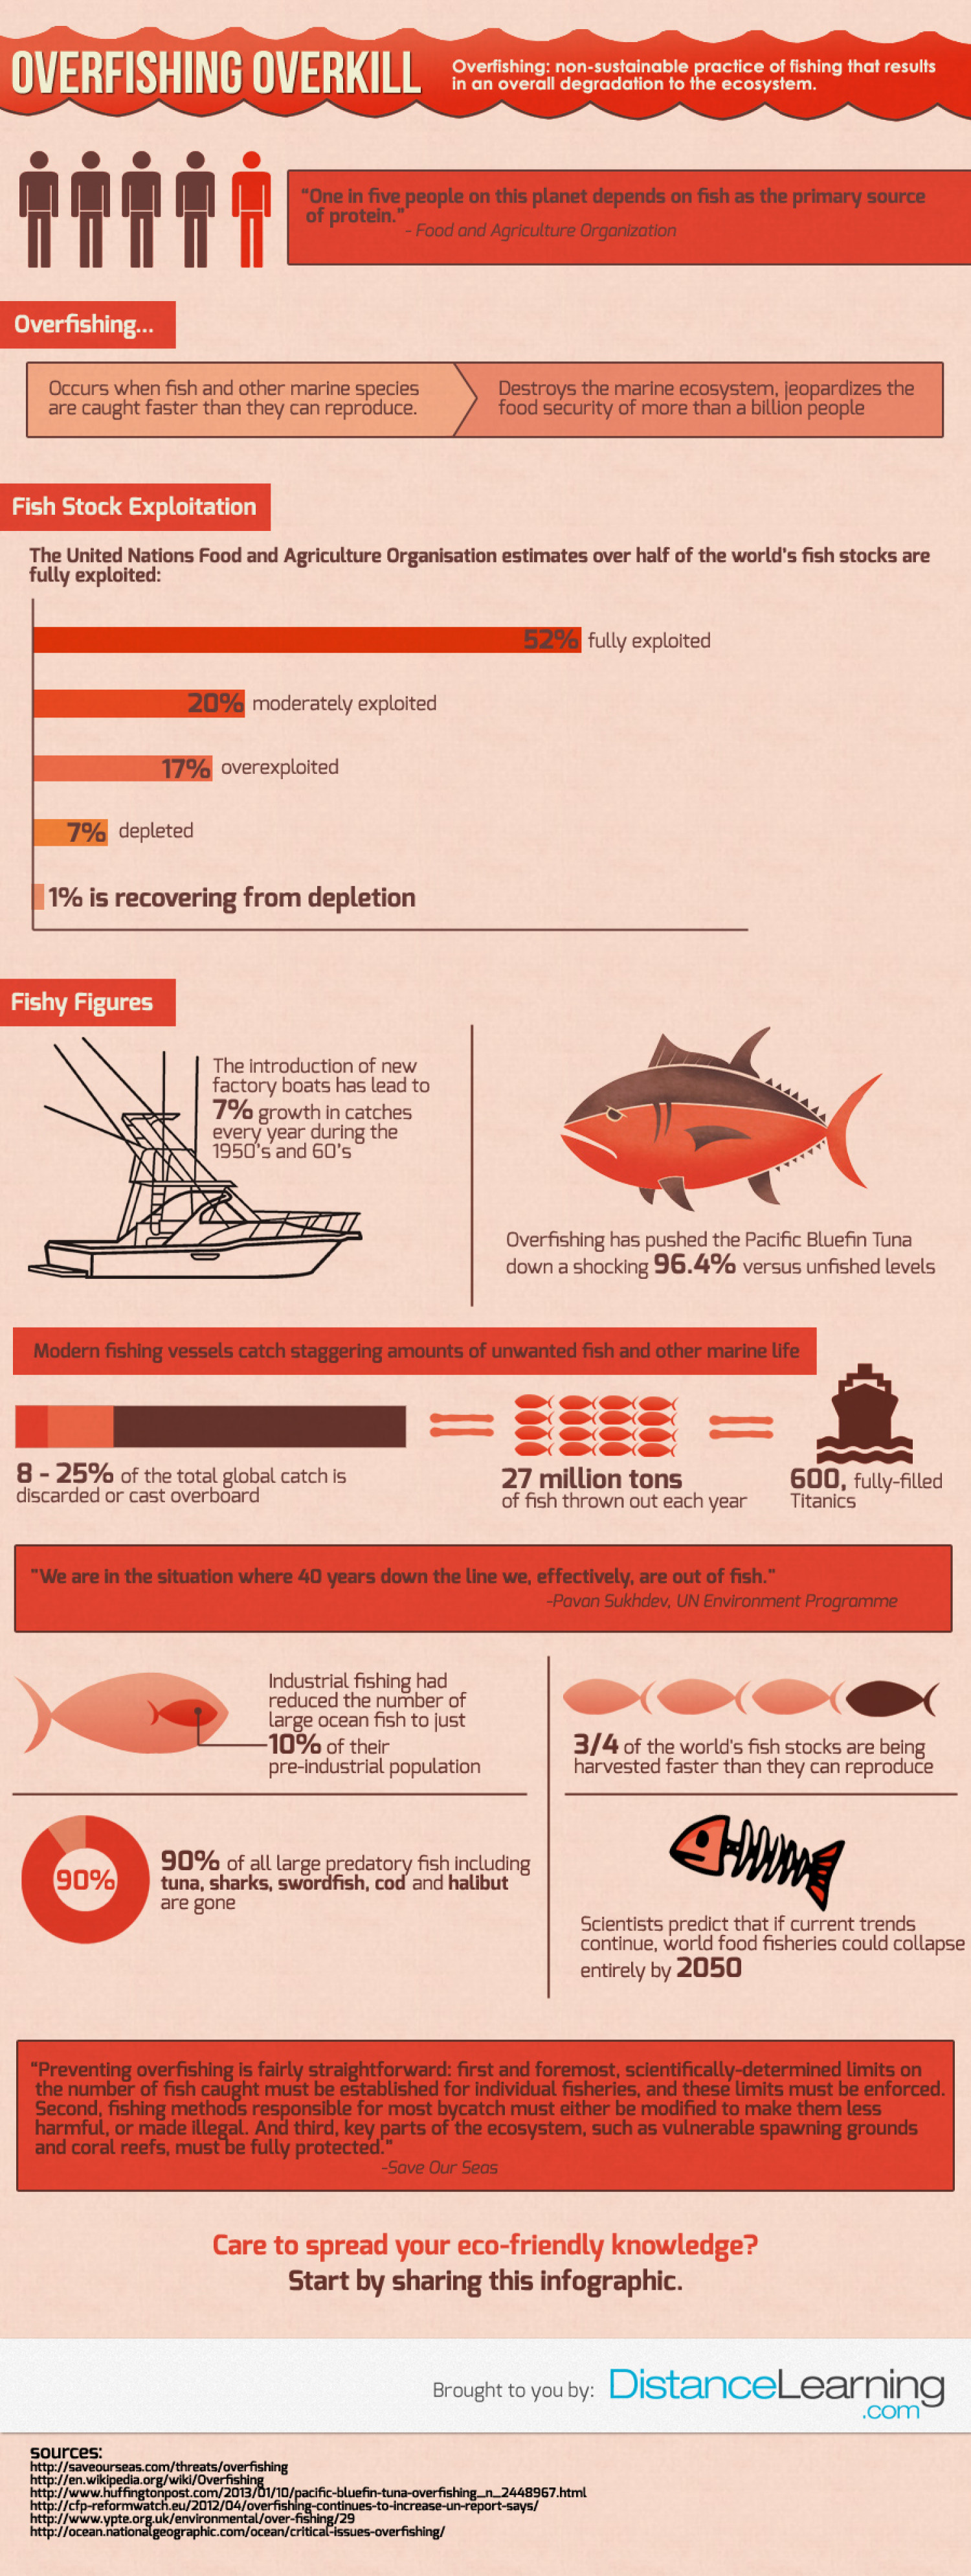 Overfishing Overkill Infographic